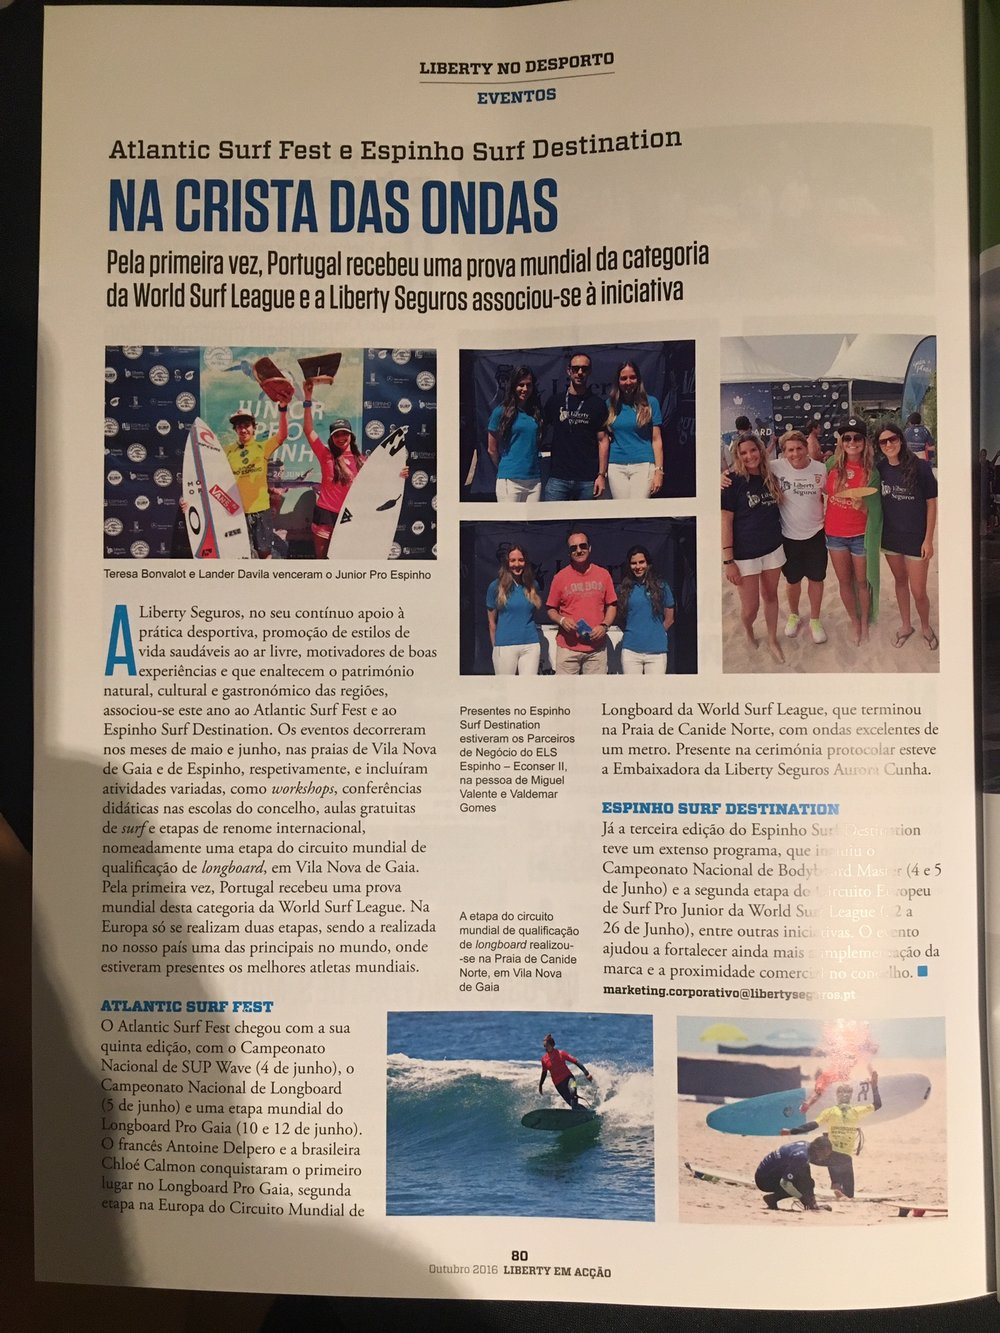 In revista Liberty no desporto, Outubro 2016